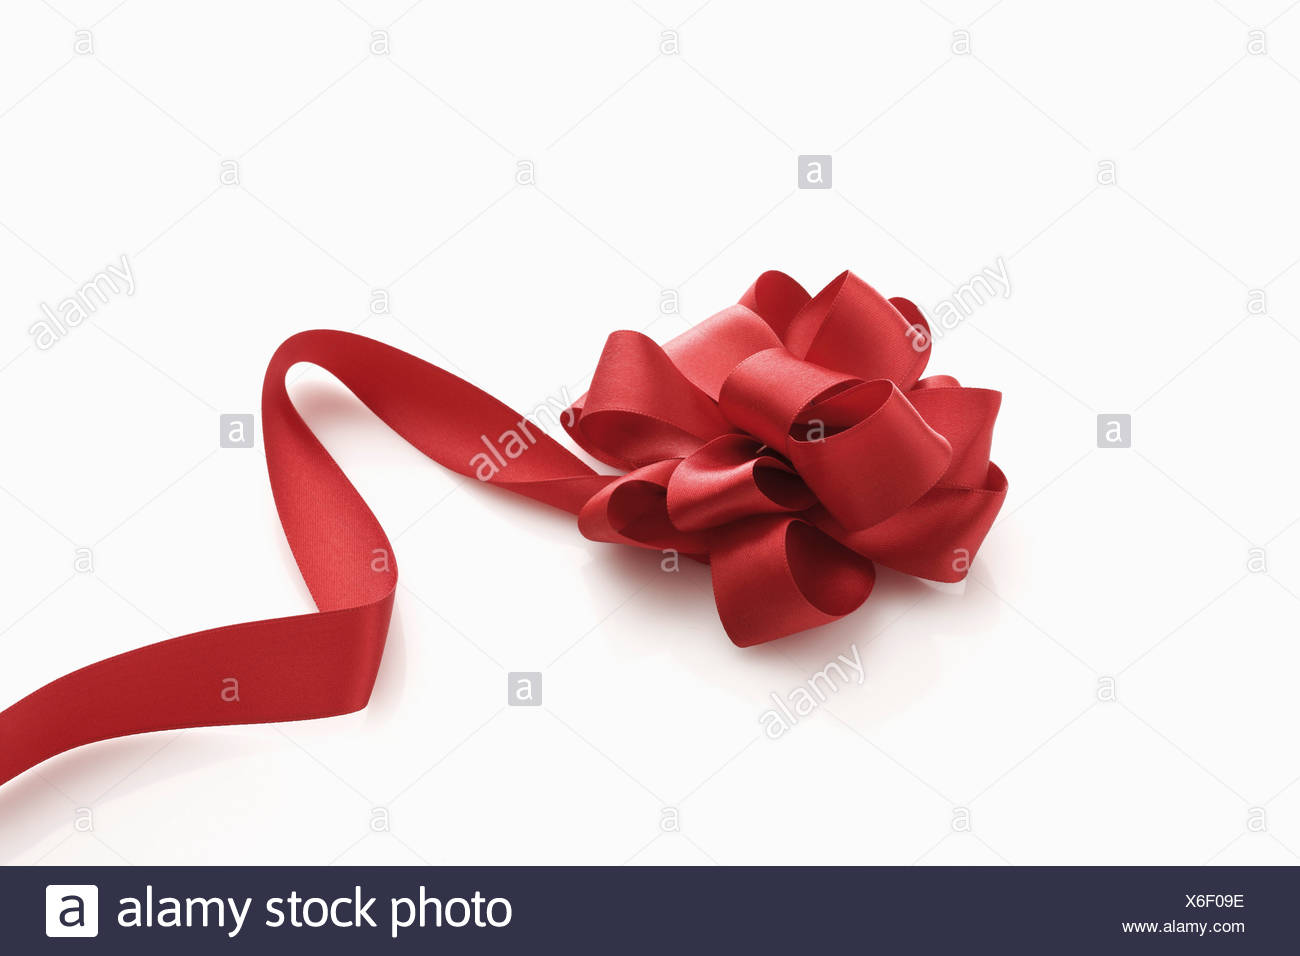 Red gift ribbon, elevated view - Stock Image